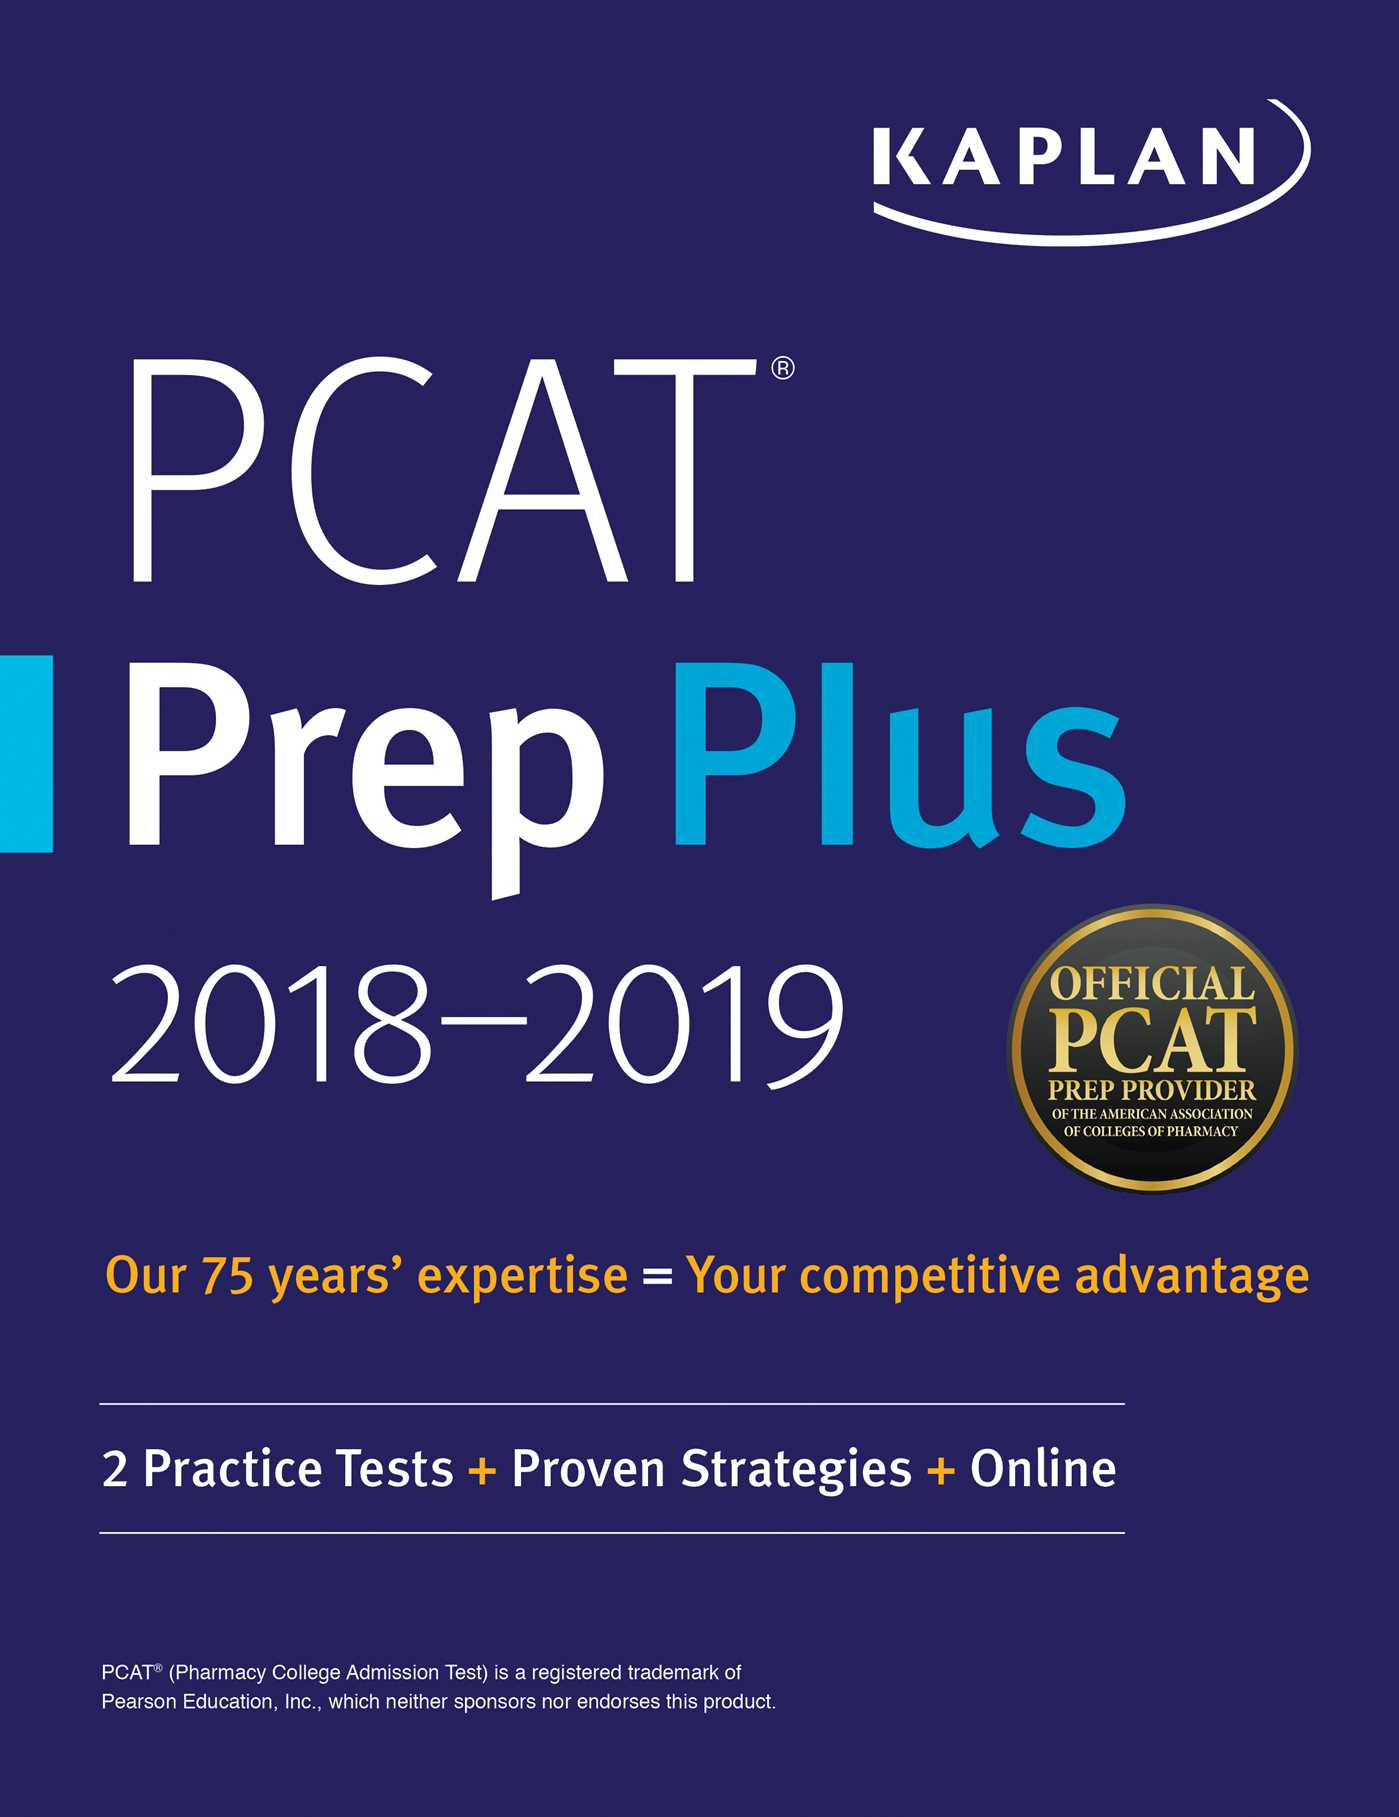 Pcat prep plus 2018 2019 ebook by kaplan test prep official ebook 9781506228877 fandeluxe Image collections